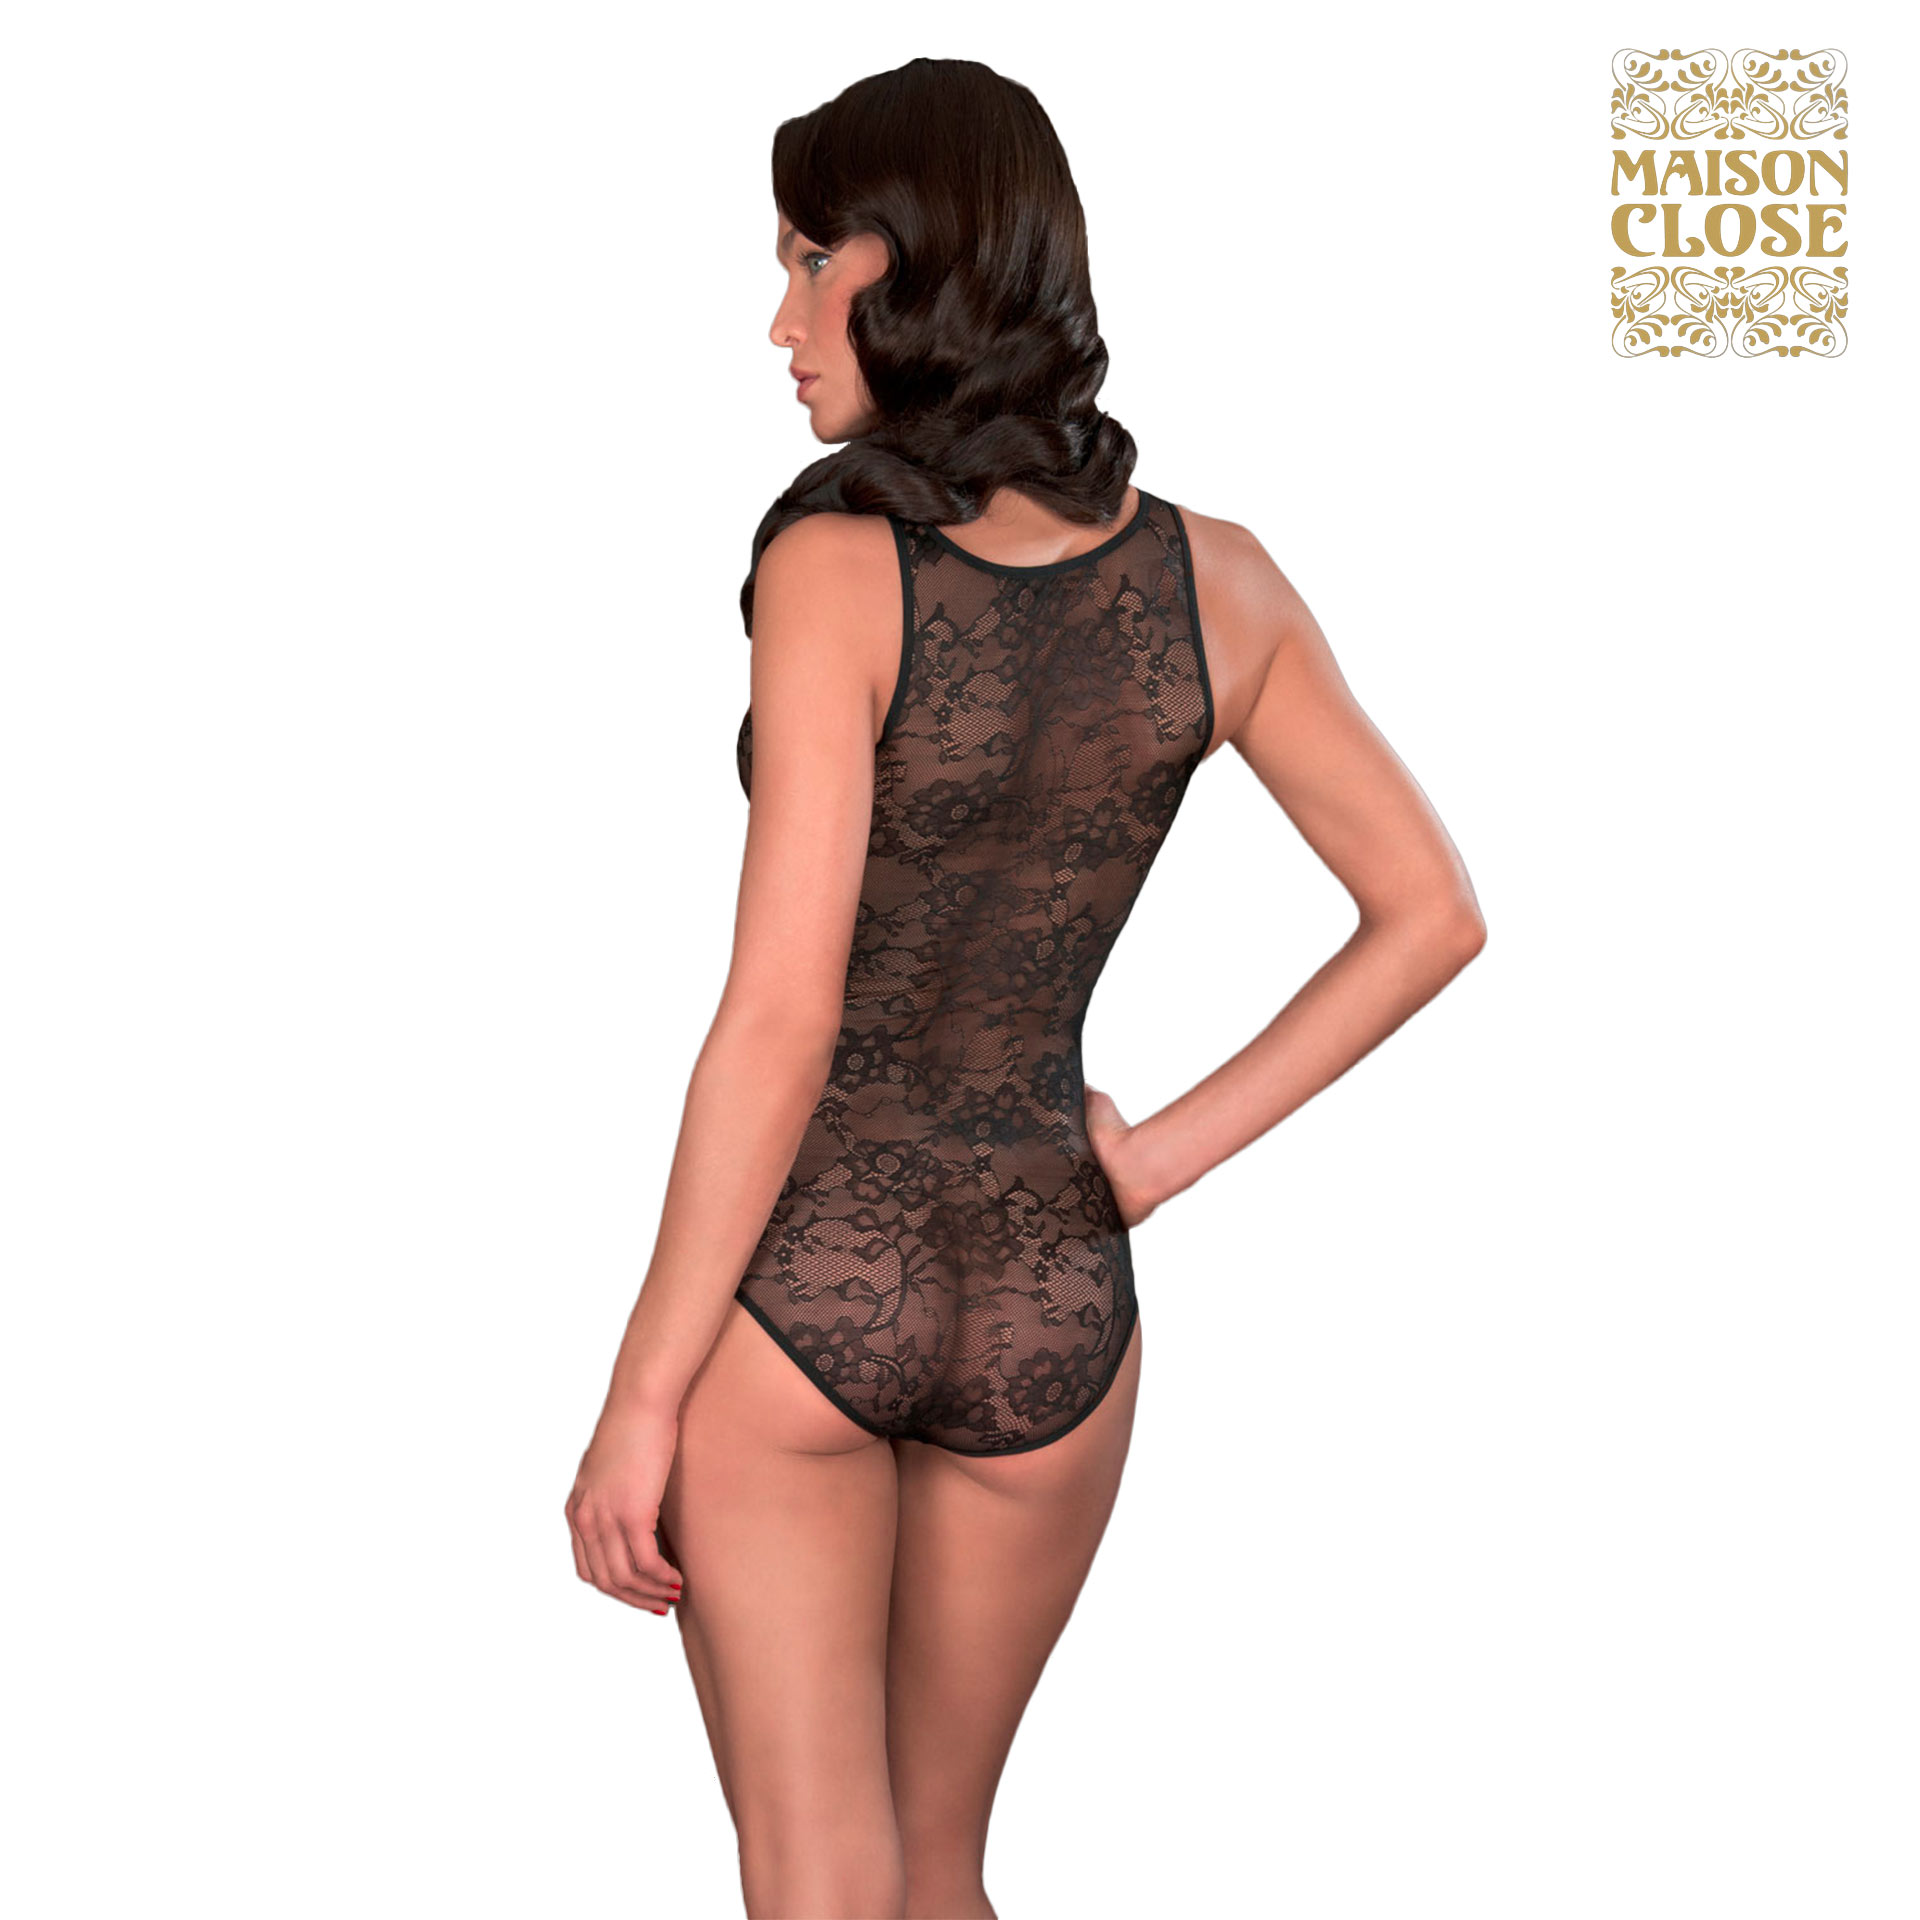 Body villa des lys noir taille xl maison close ebay - Vente privee maison close ...